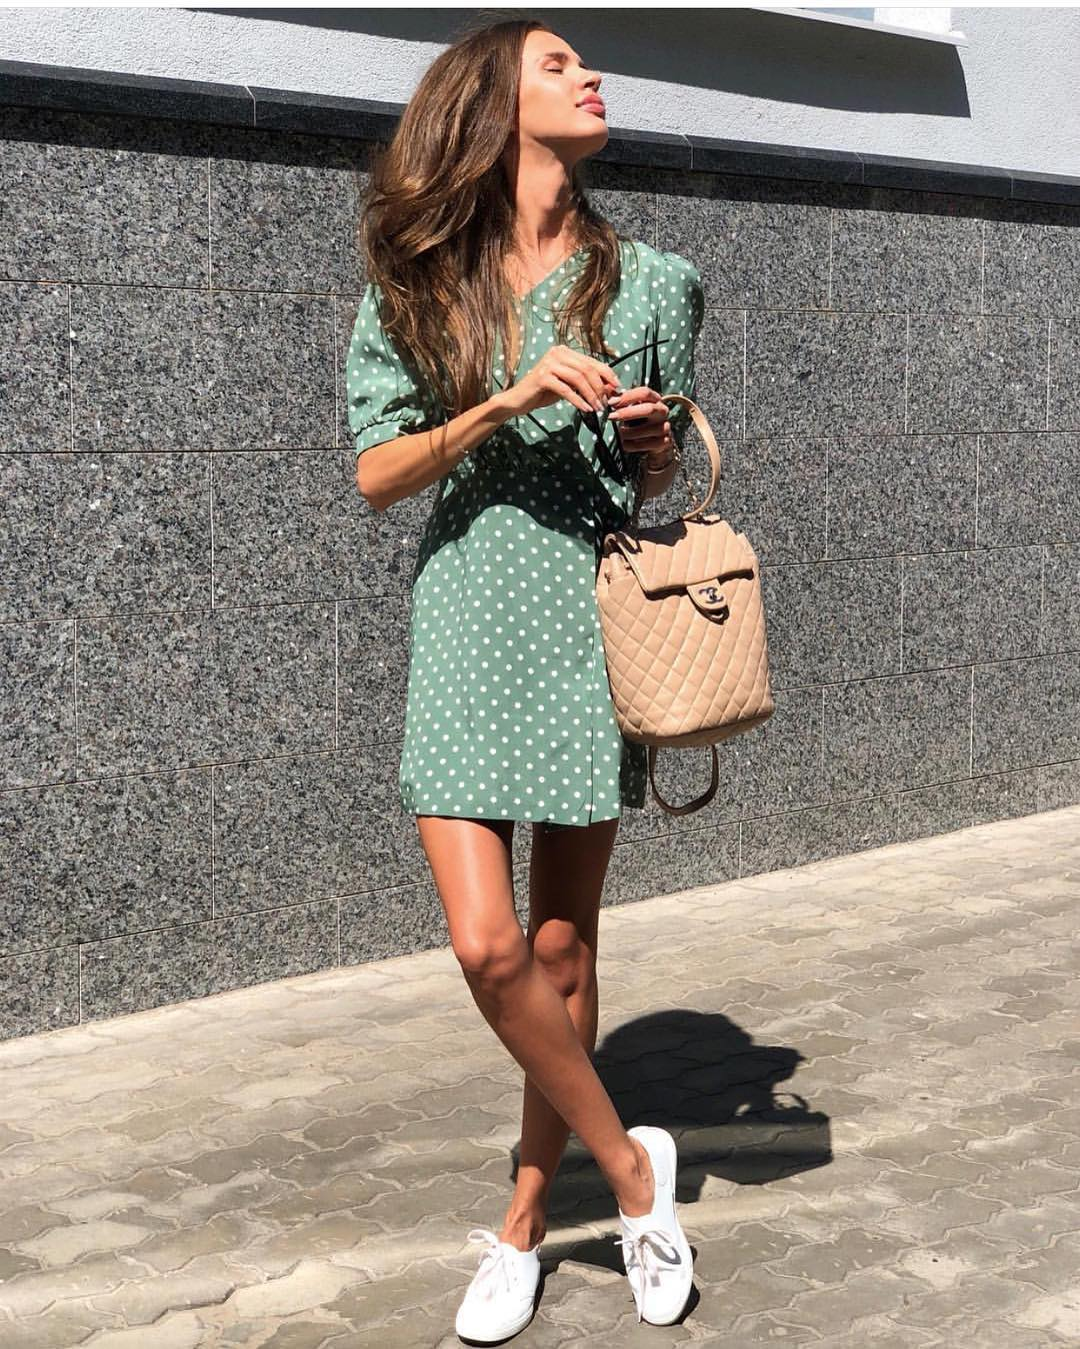 Green Dress In White Dots For Summer 2020